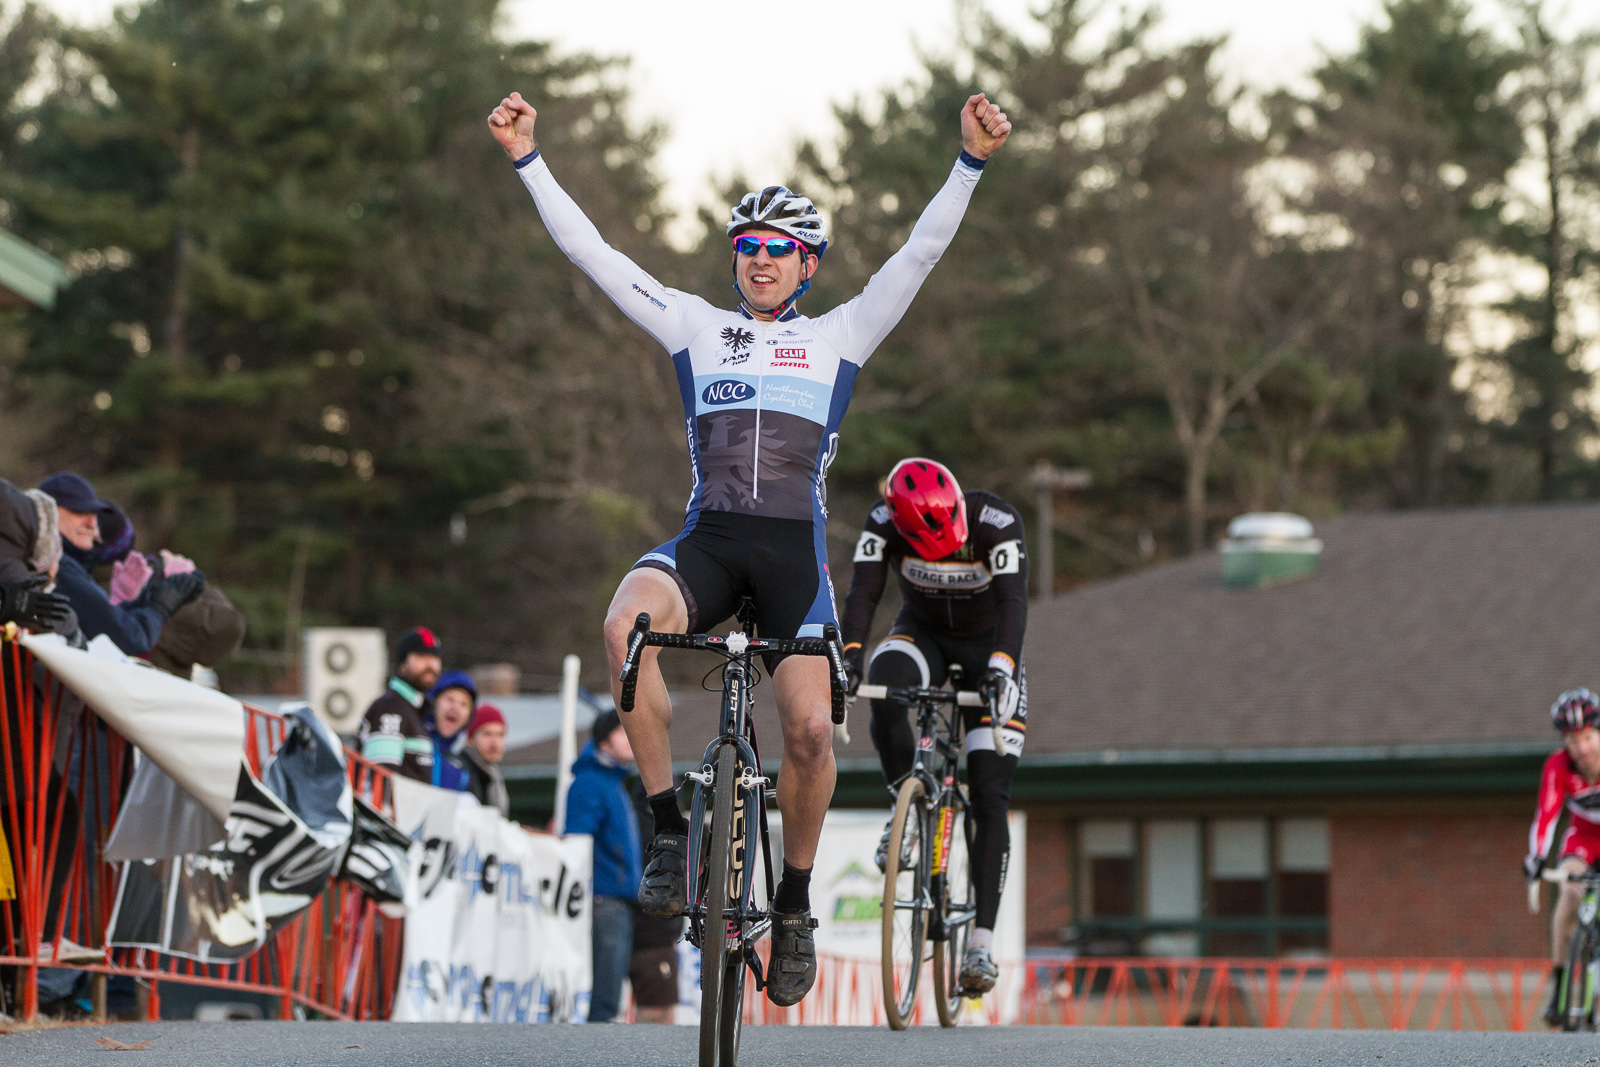 Jeremy Durrin attacked during the last half of a lap, taking the win as Mike Garrigan rolled in for second at Baystate Cross. Photo: Todd Prekaski.